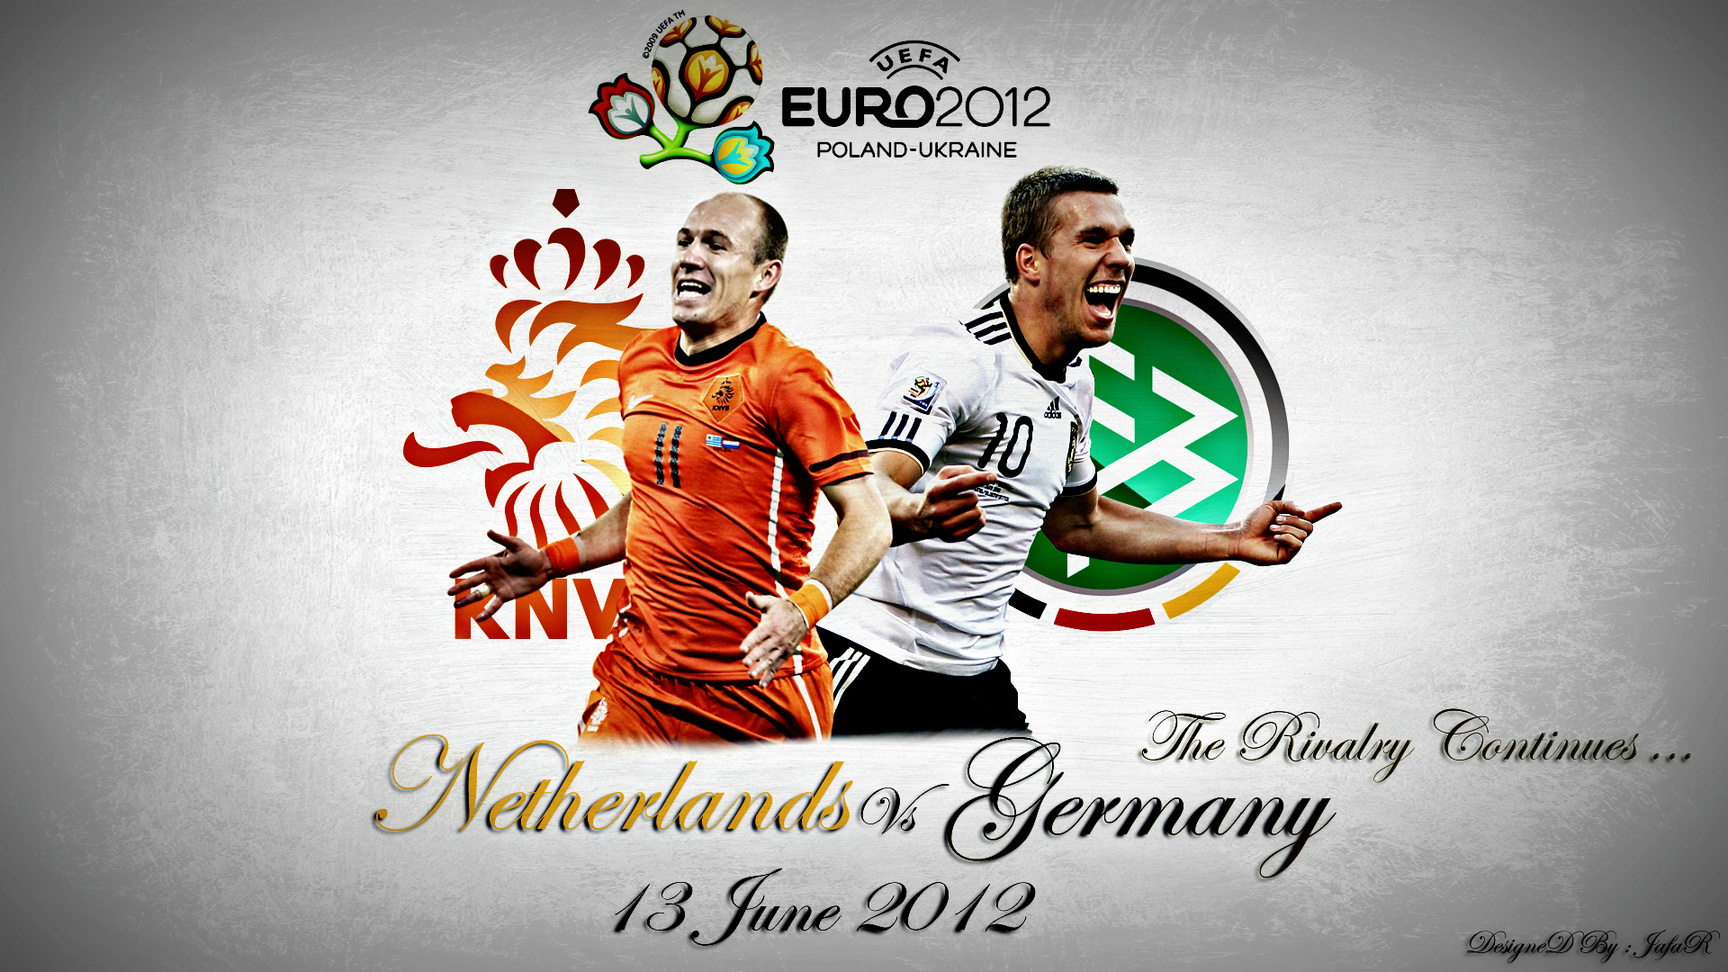 netherlands vs germany - photo #14